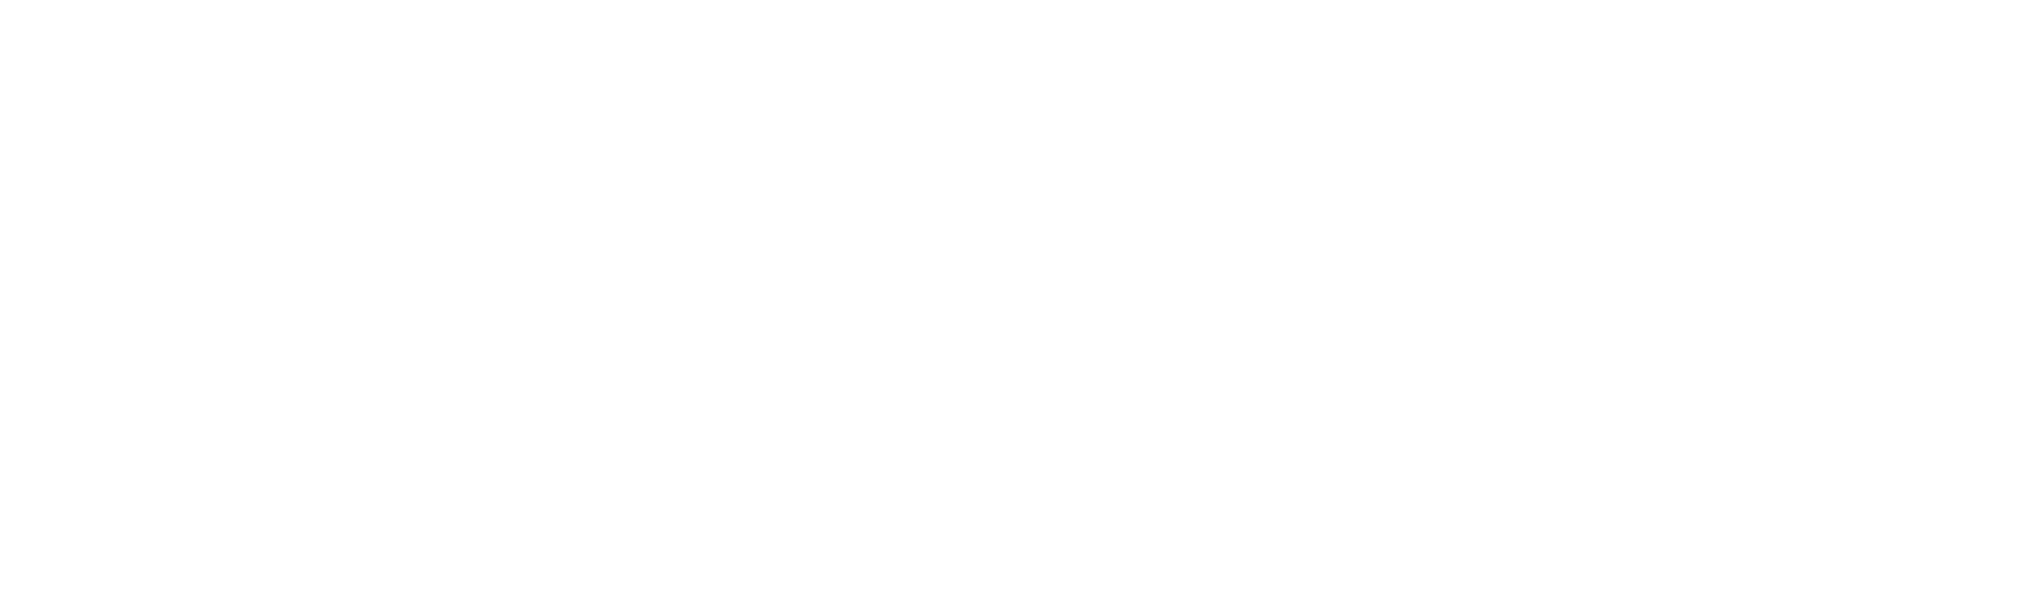 Sandoval Legacy Group, a division of Holstrom, Block & Parke, APLC